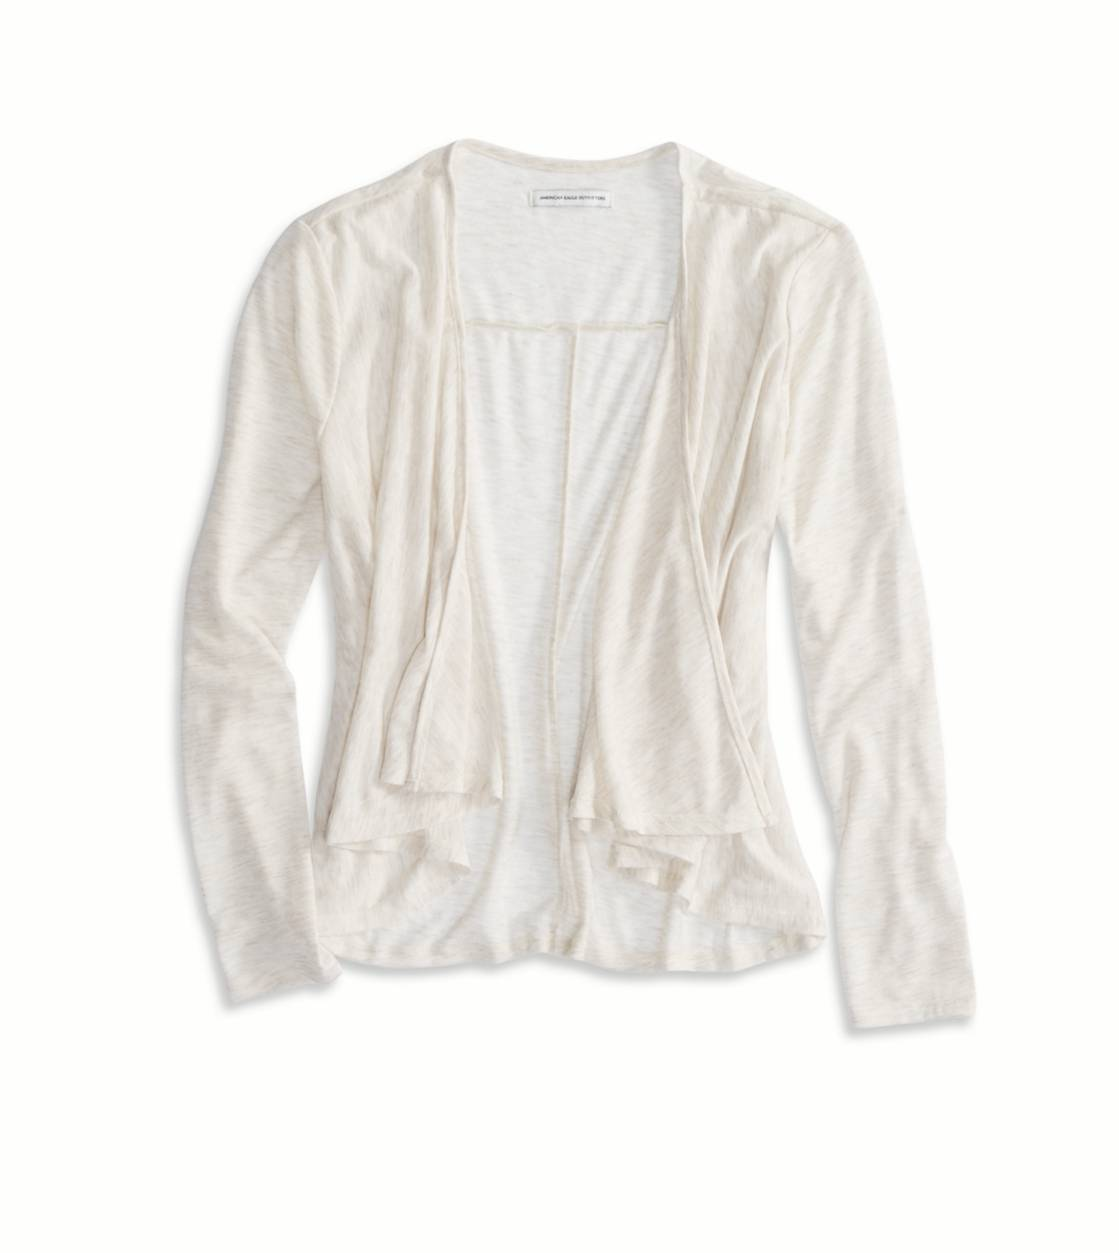 Oatmeal Heather AE Waterfall Cardigan